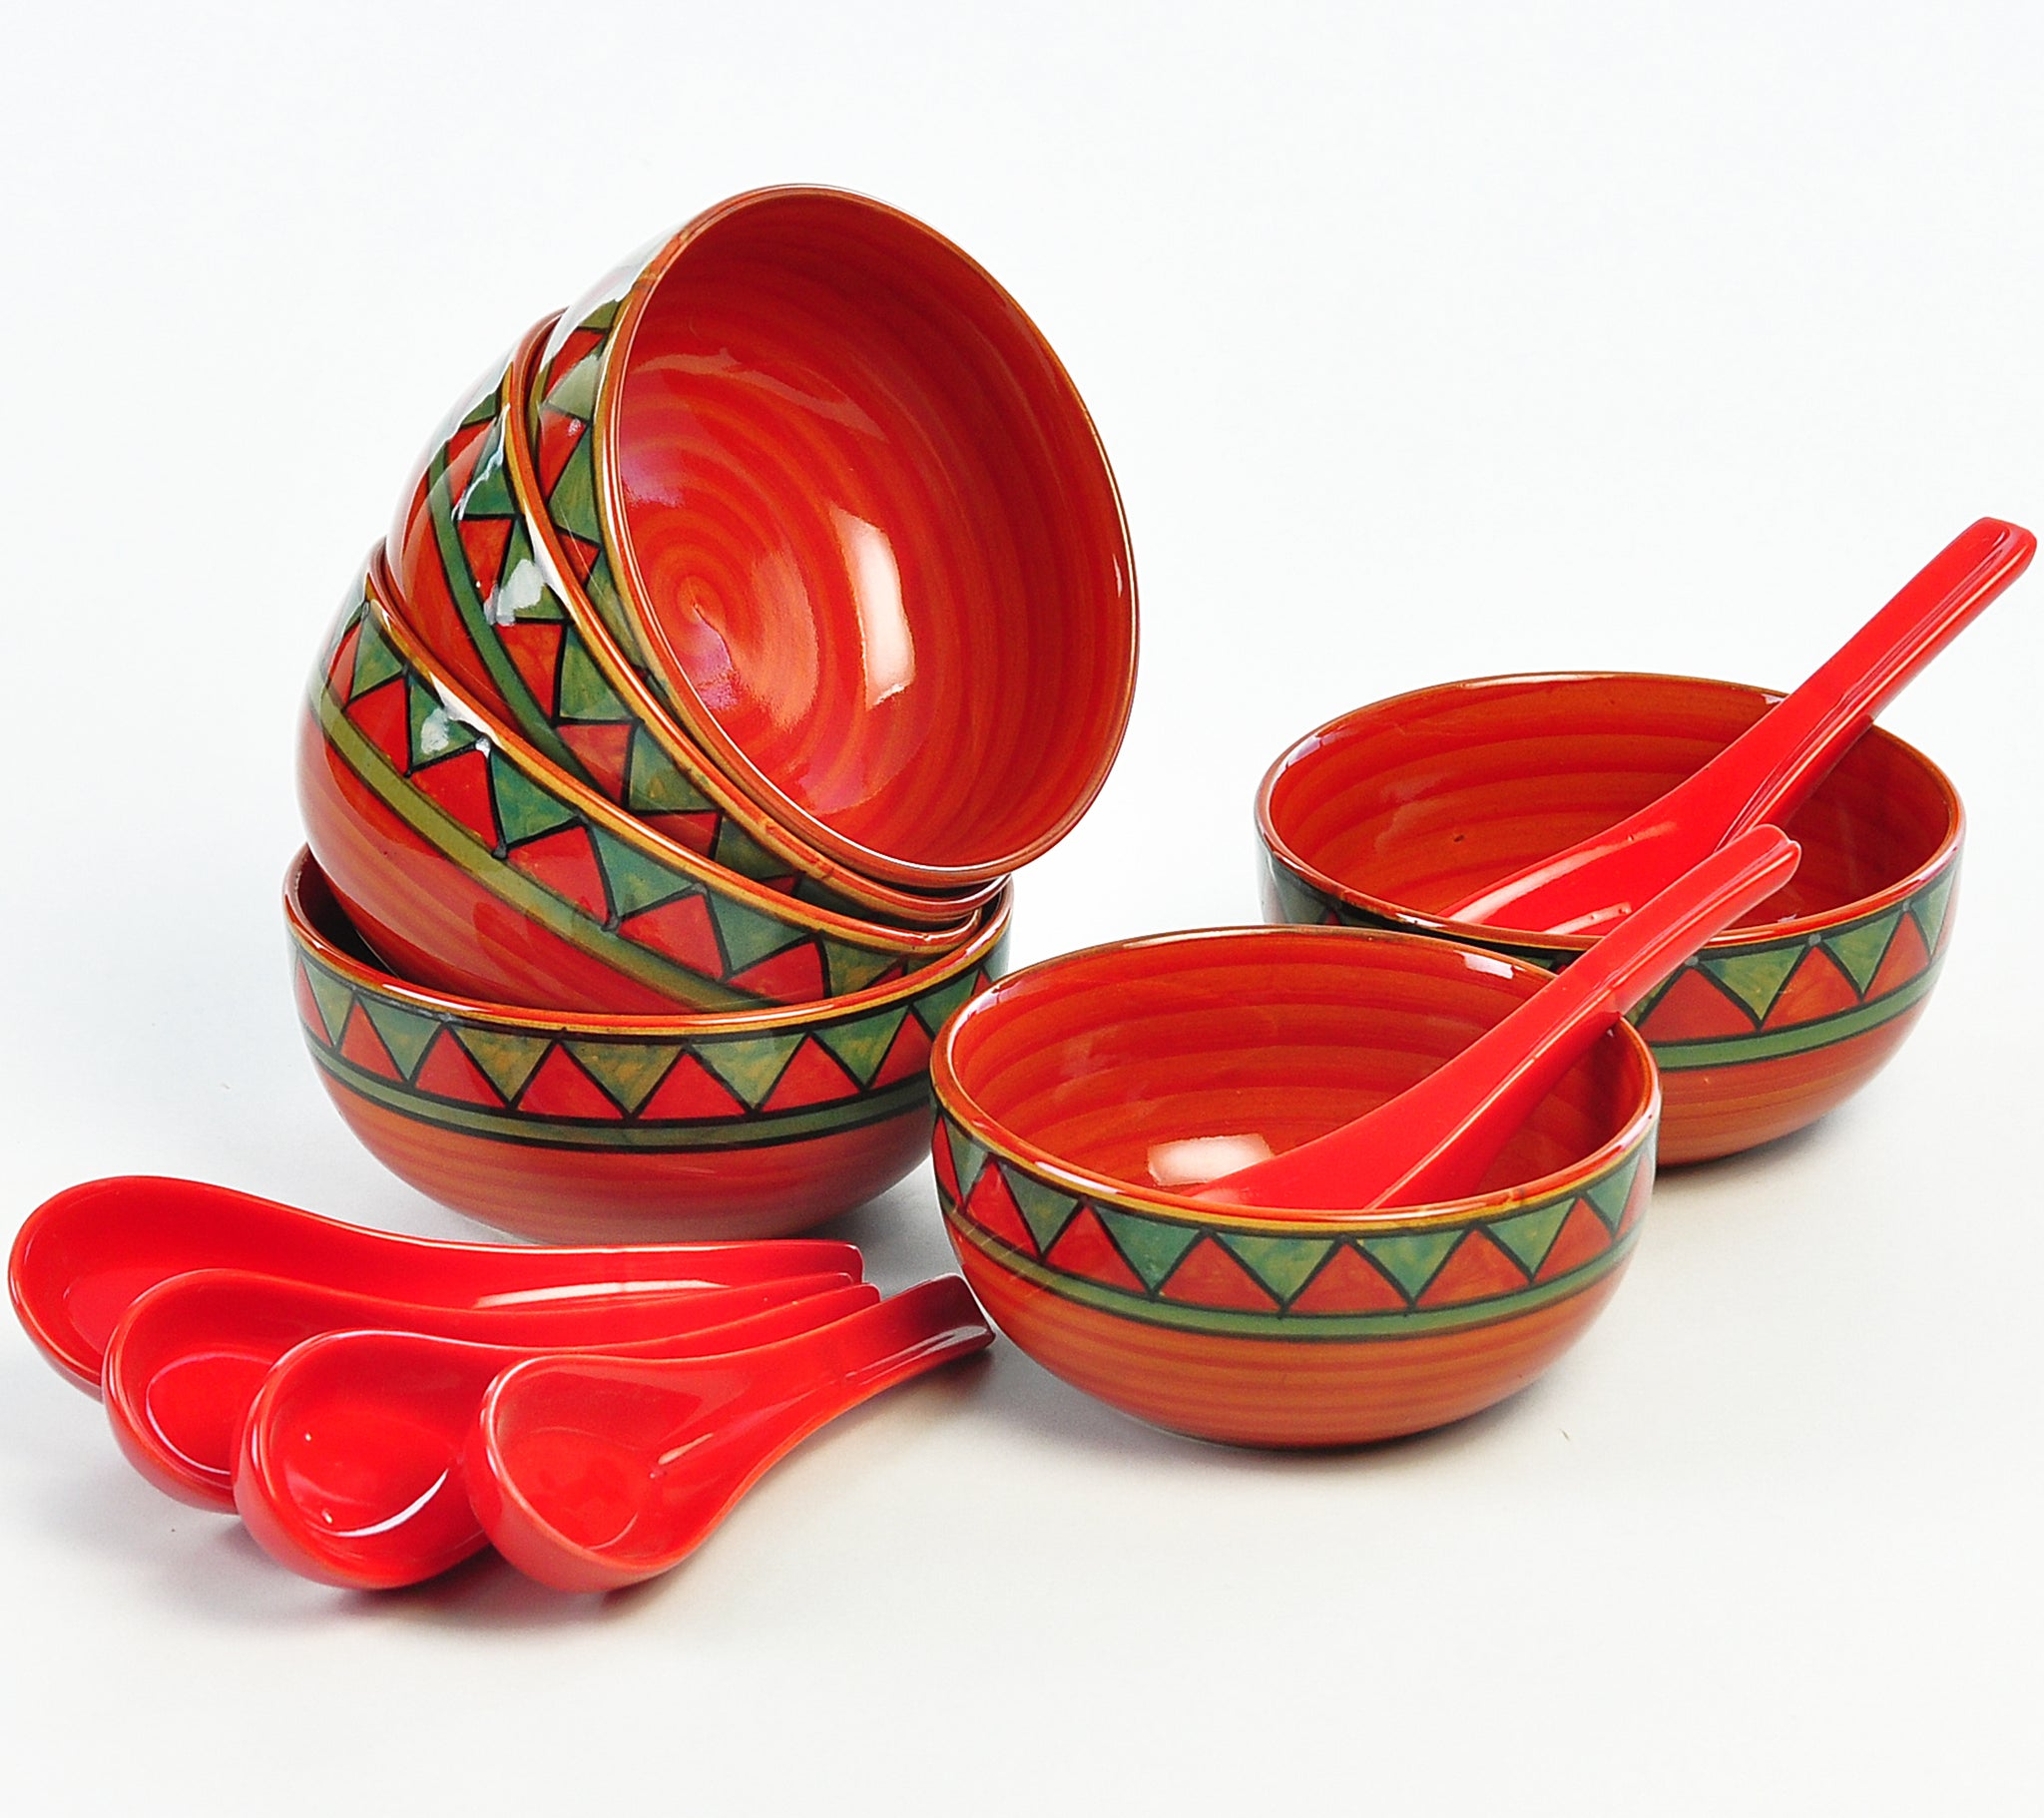 Trian Red N Green Soup Bowls - Set of 6+6